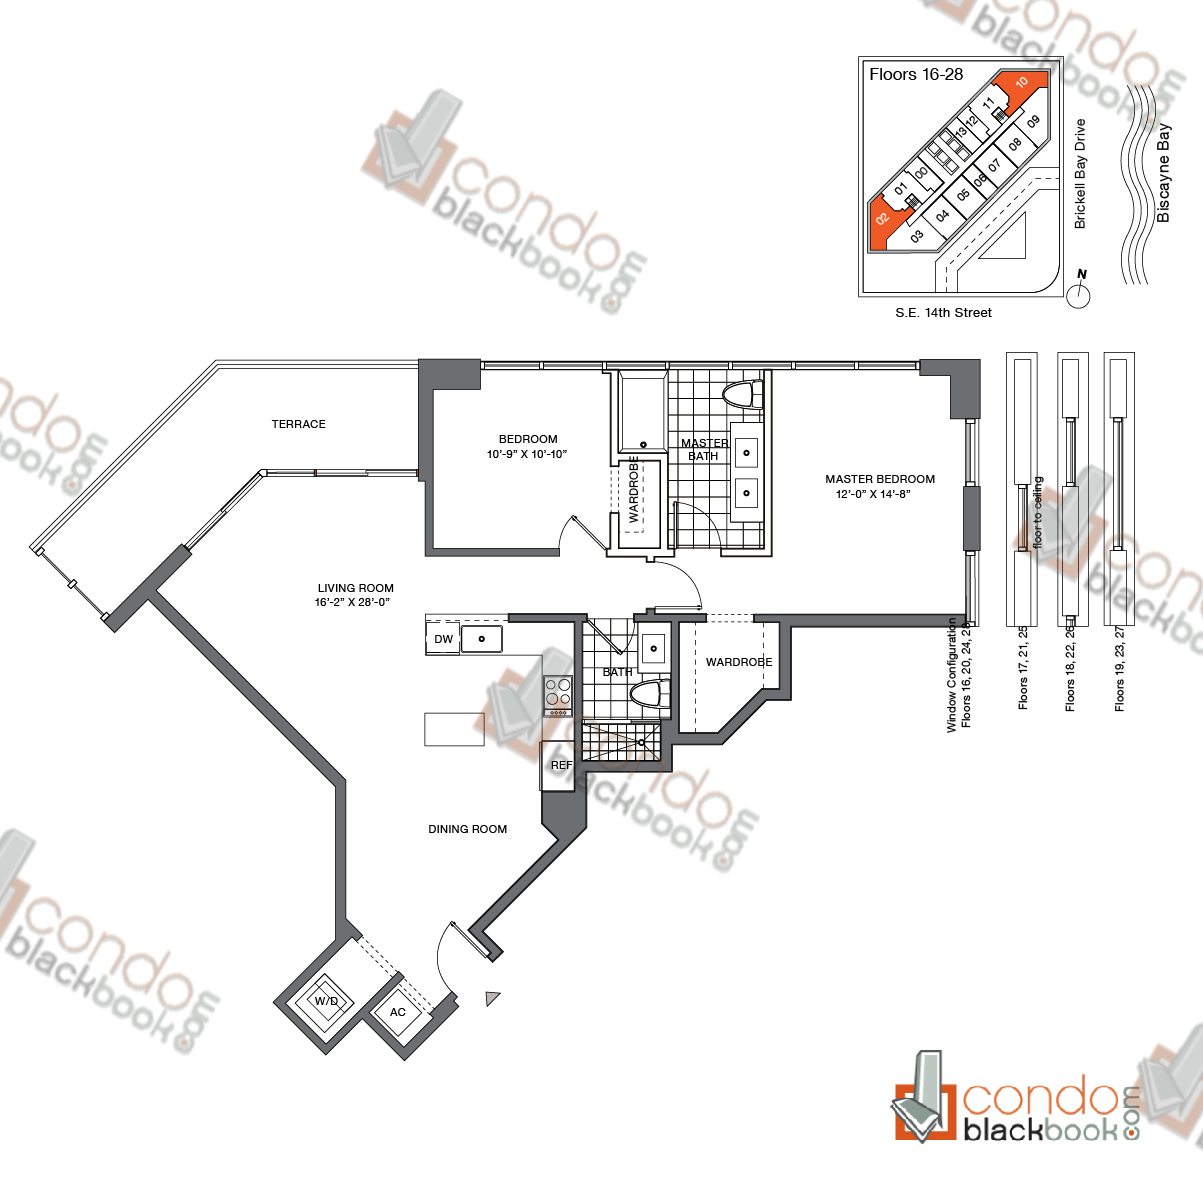 Floor plan for Brickell House Brickell Miami, model B5_16-28, line 02, 10, 2/2 bedrooms, 1,116 sq ft